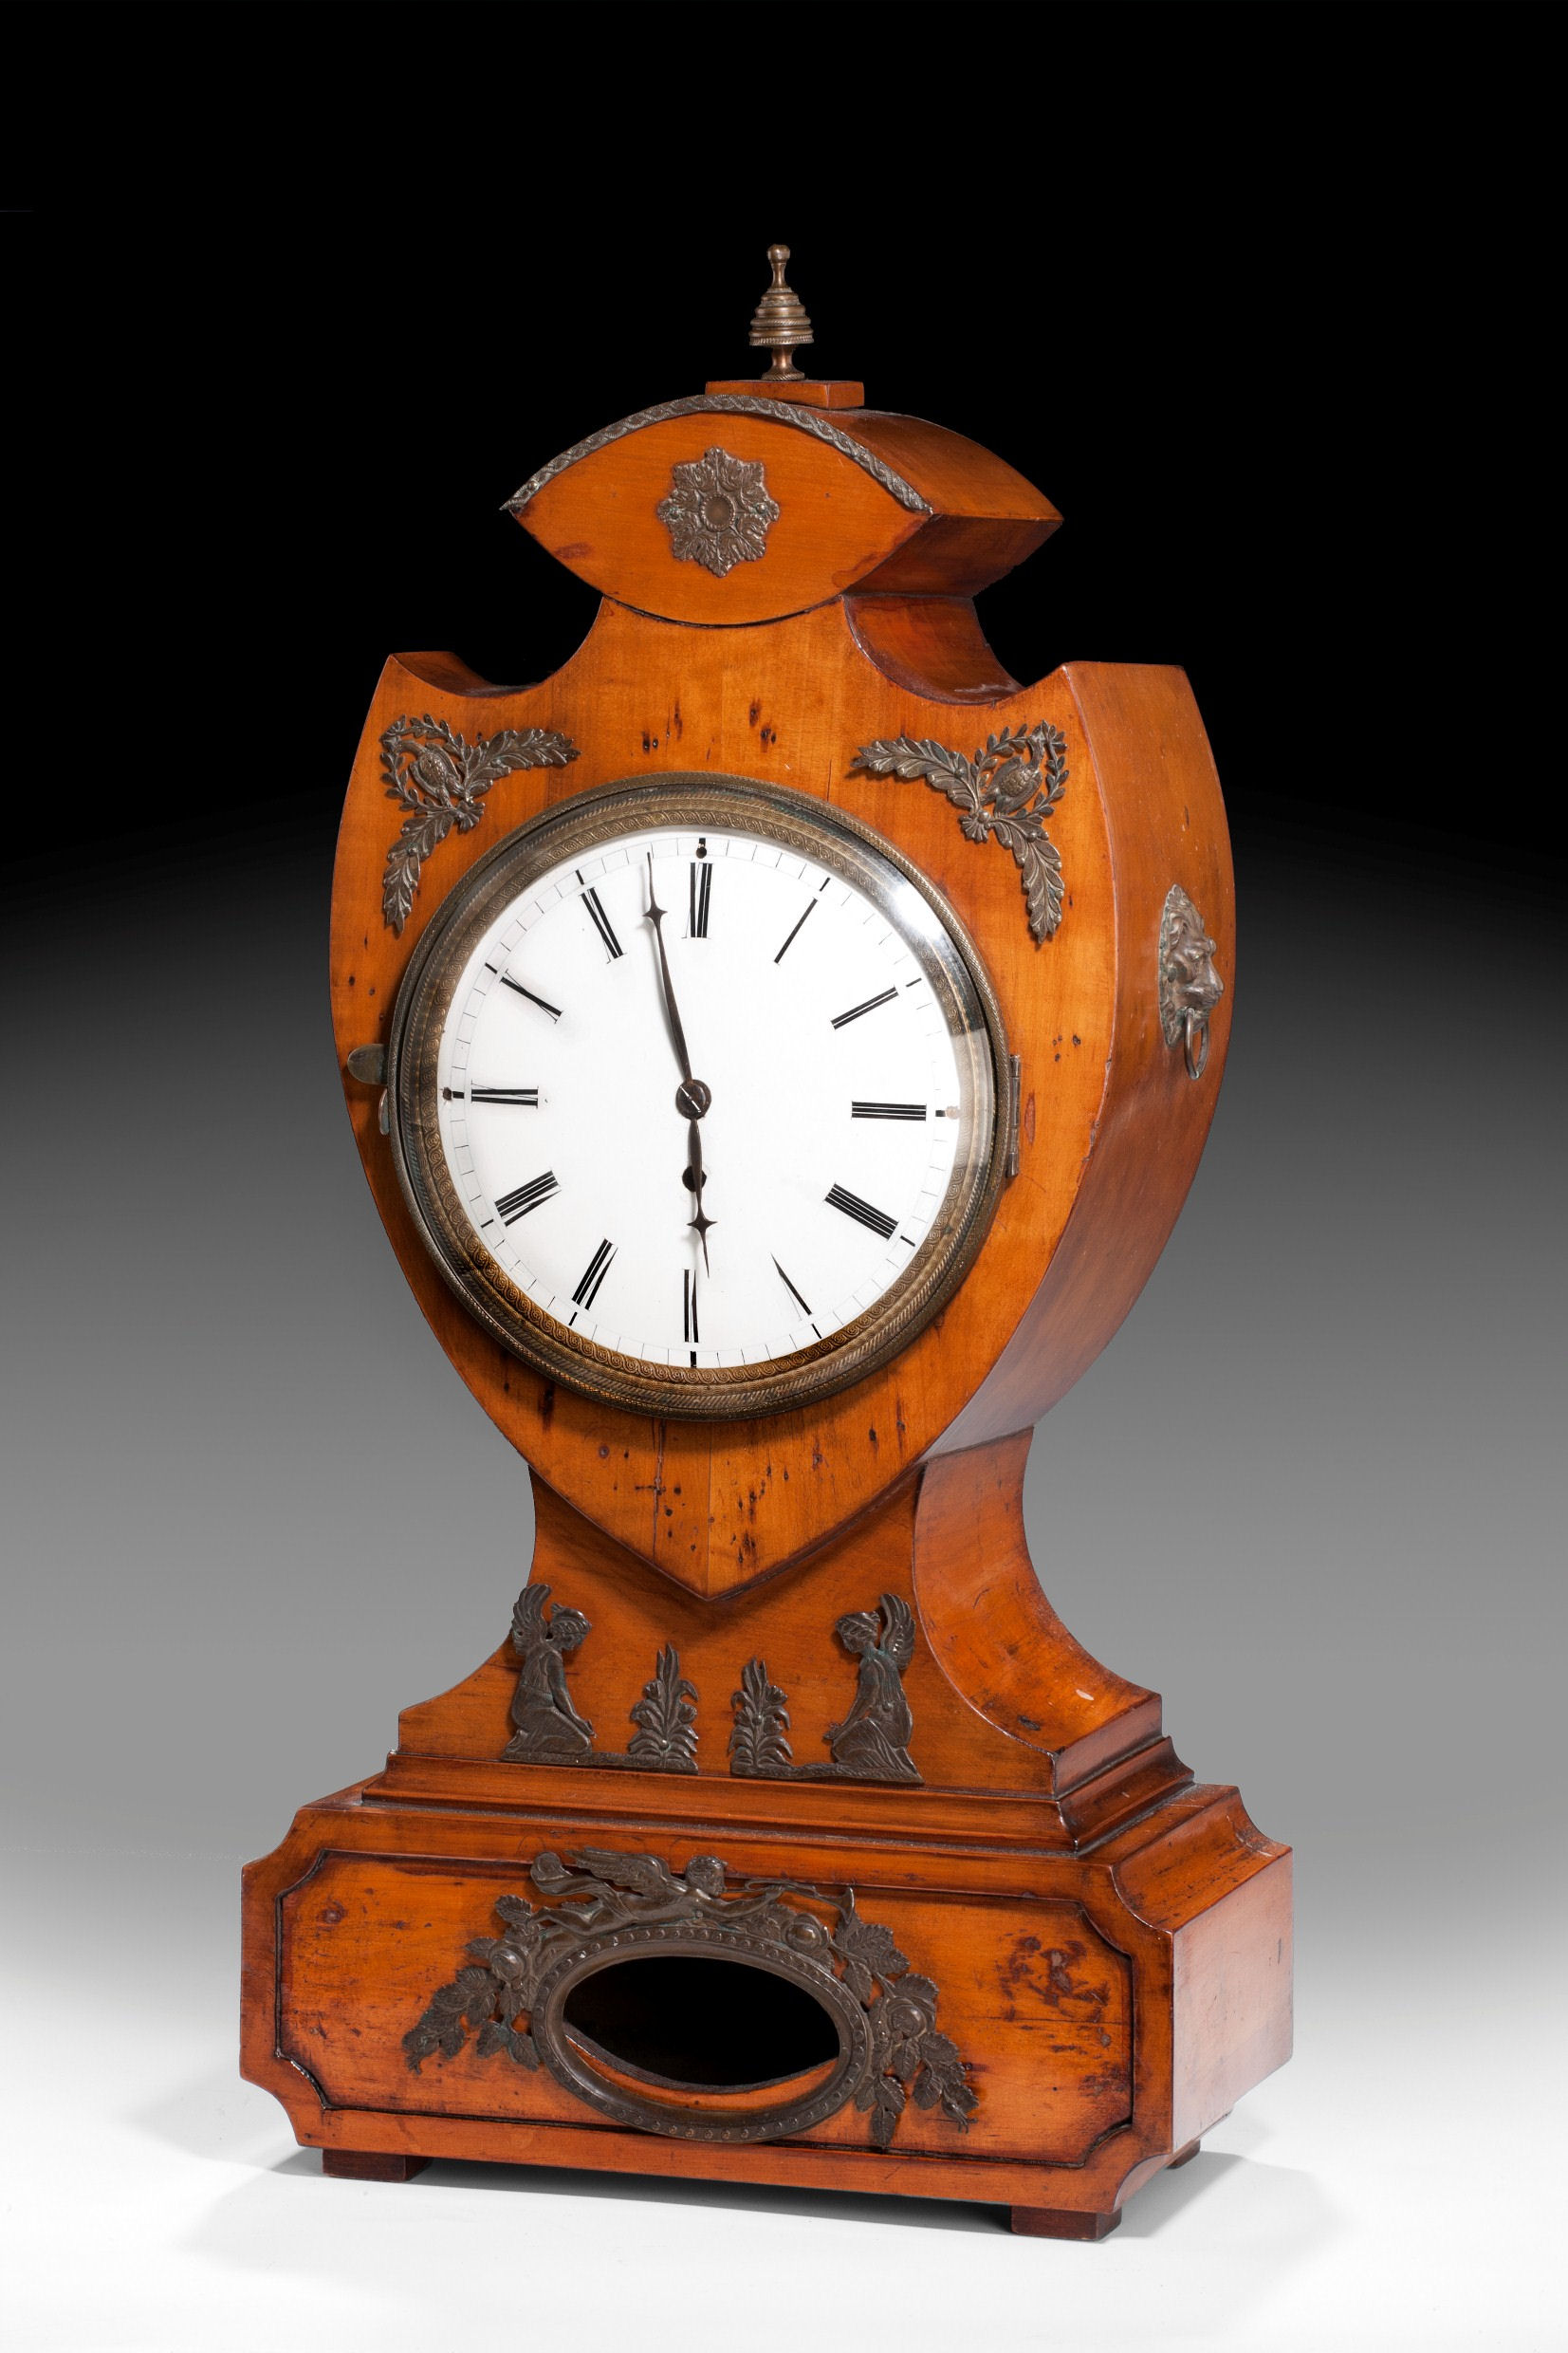 ANTIQUE BIEDERMEYER PERIOD CLOCK